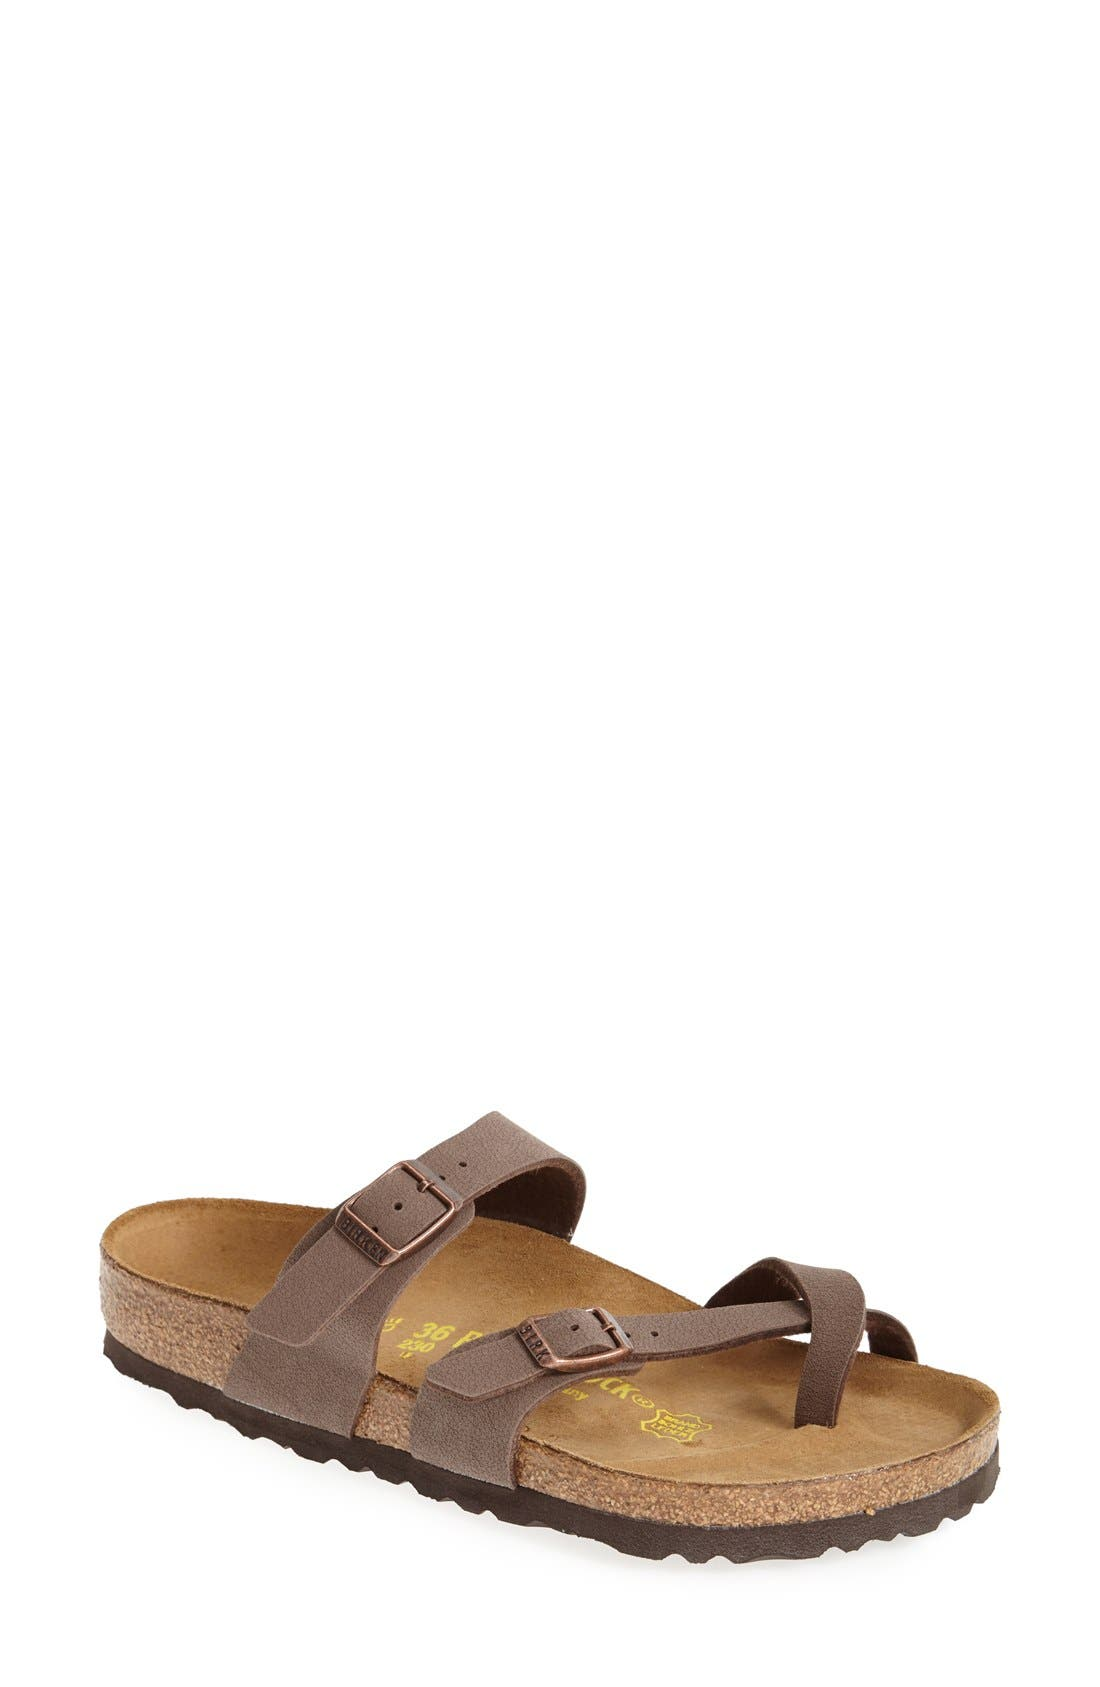 Alternate Image 1 Selected - Birkenstock Mayari Birko-Flor Sandal (Women)